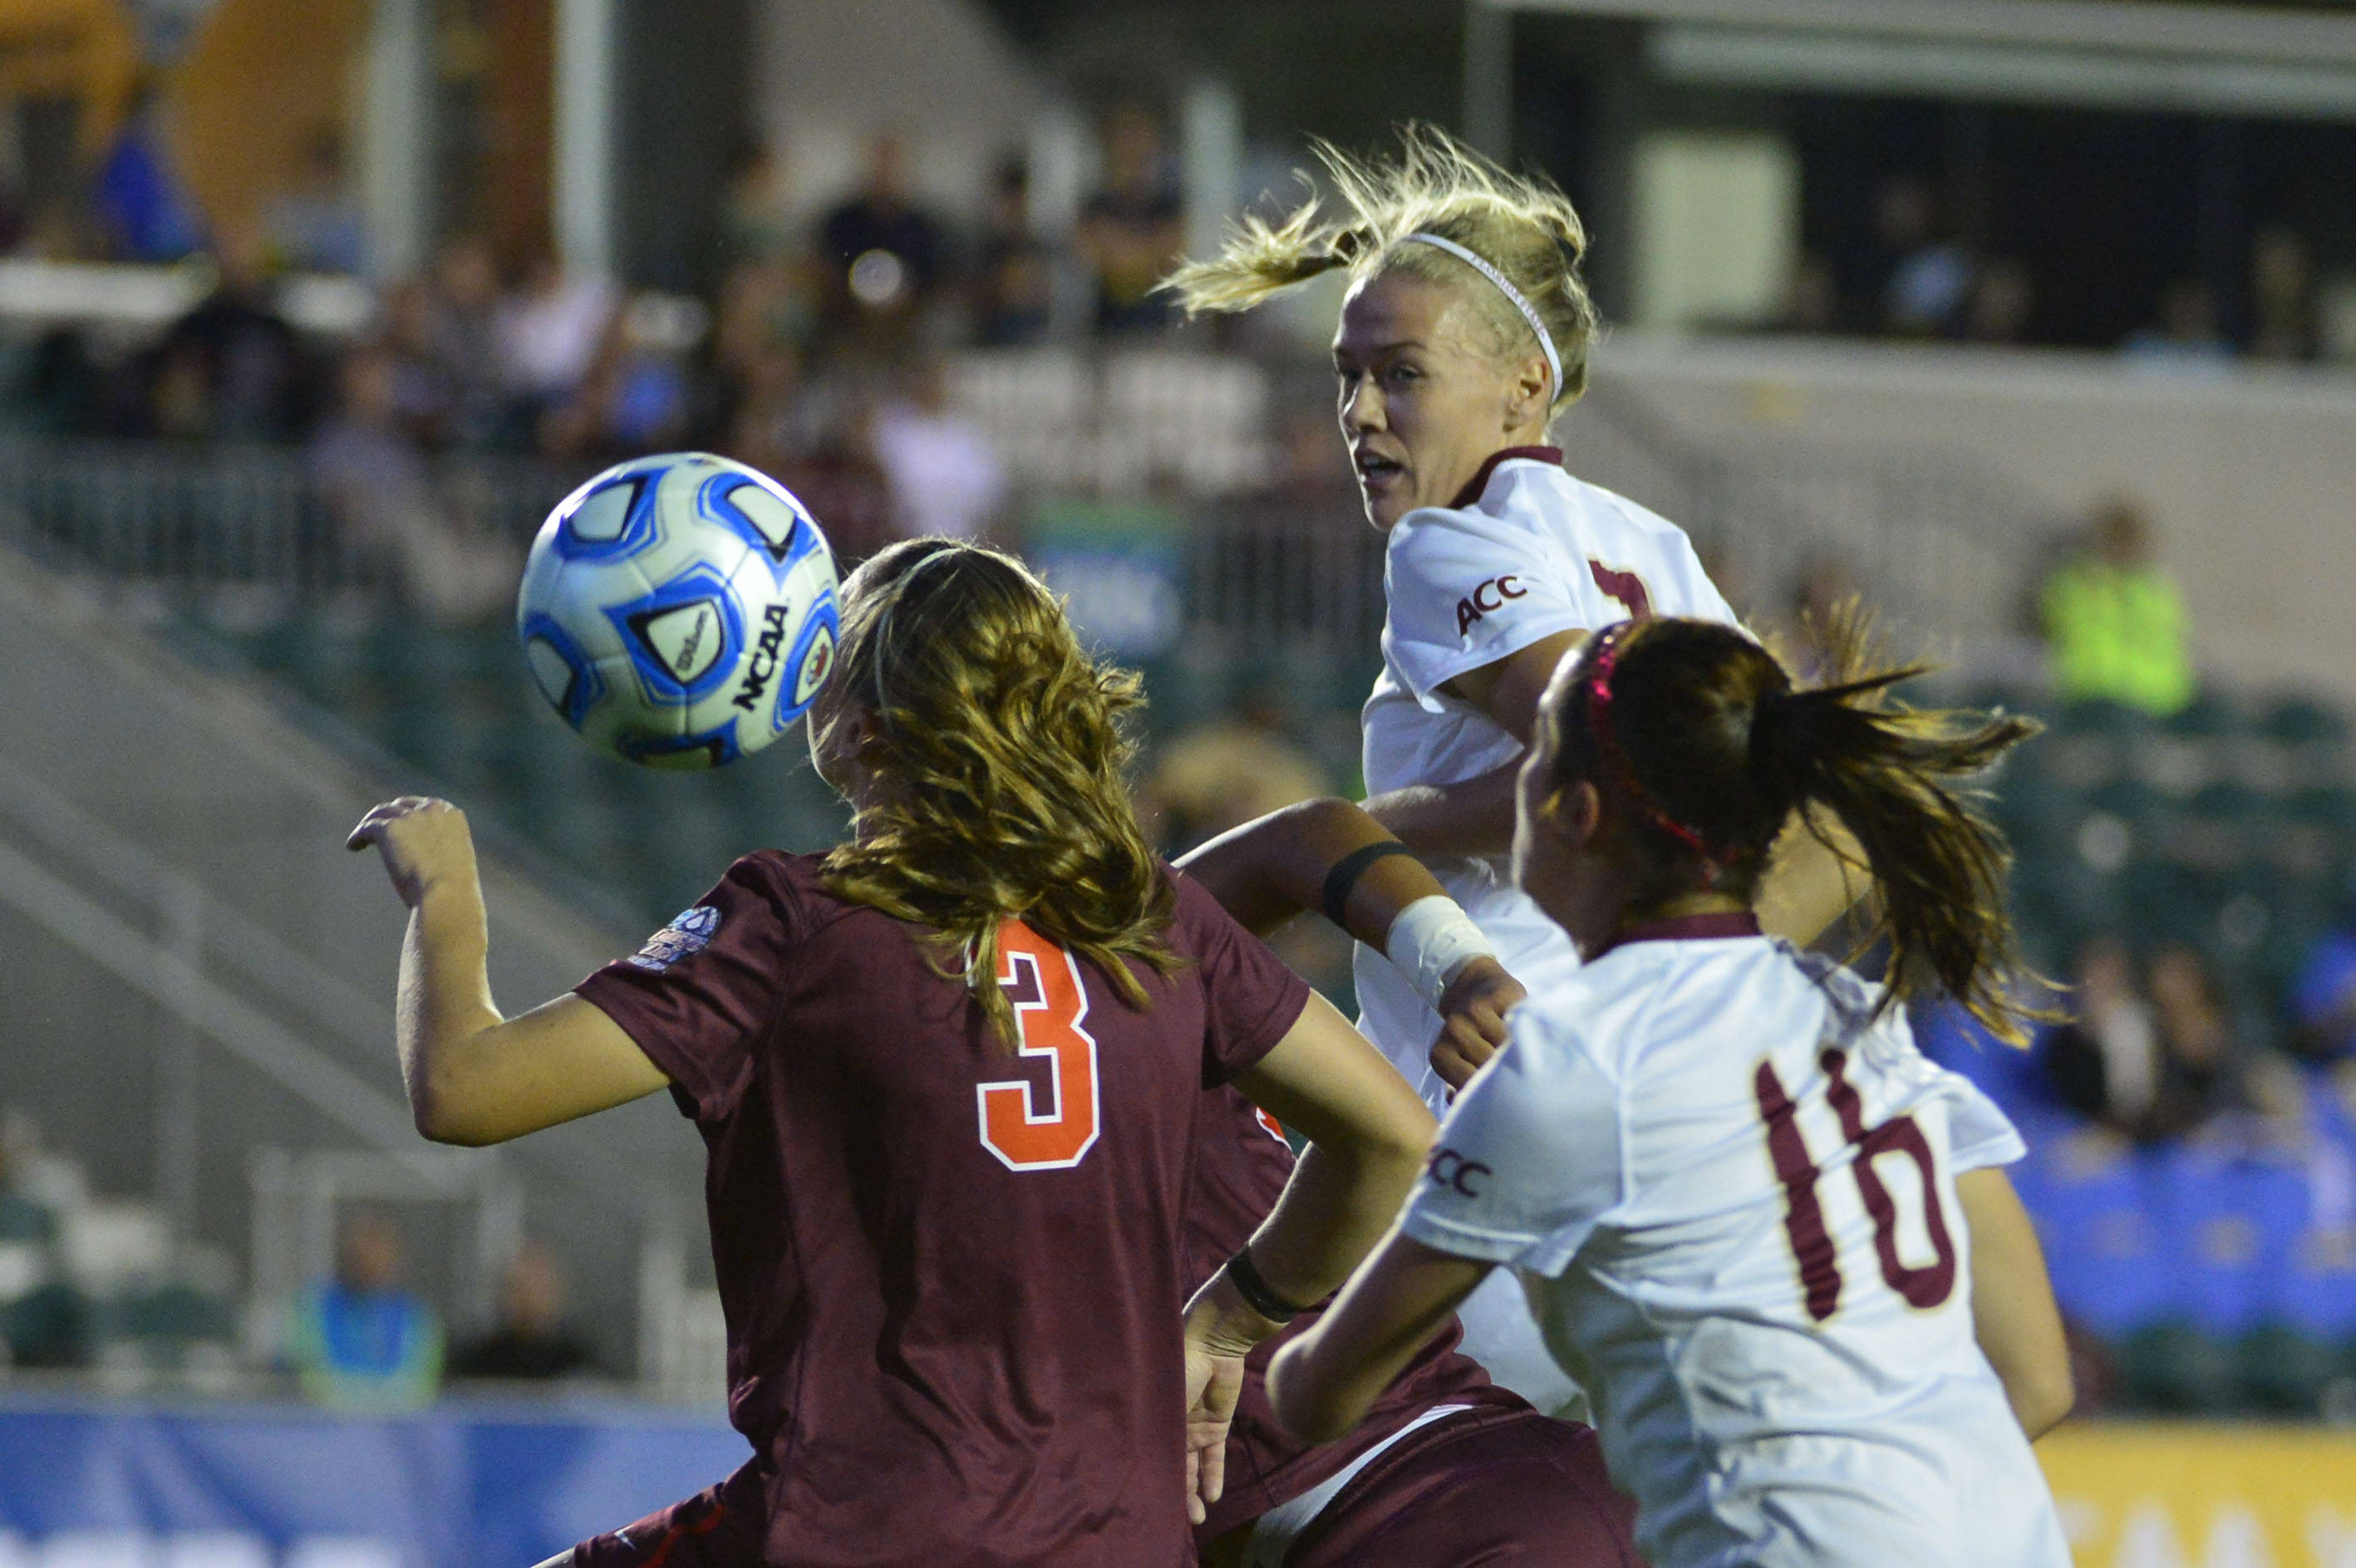 Dec 6, 2013; Cary, NC, USA; Florida State Seminoles midfielder Dagny Brynjarsdottir (7) heads the ball as midfielder Carson Pickett (16) is in the foreground and Virginia Tech Hokies midfielder Katie Yensen (3) defends in the first half at WakeMed Soccer Park. Mandatory Credit: Bob Donnan-USA TODAY Sports